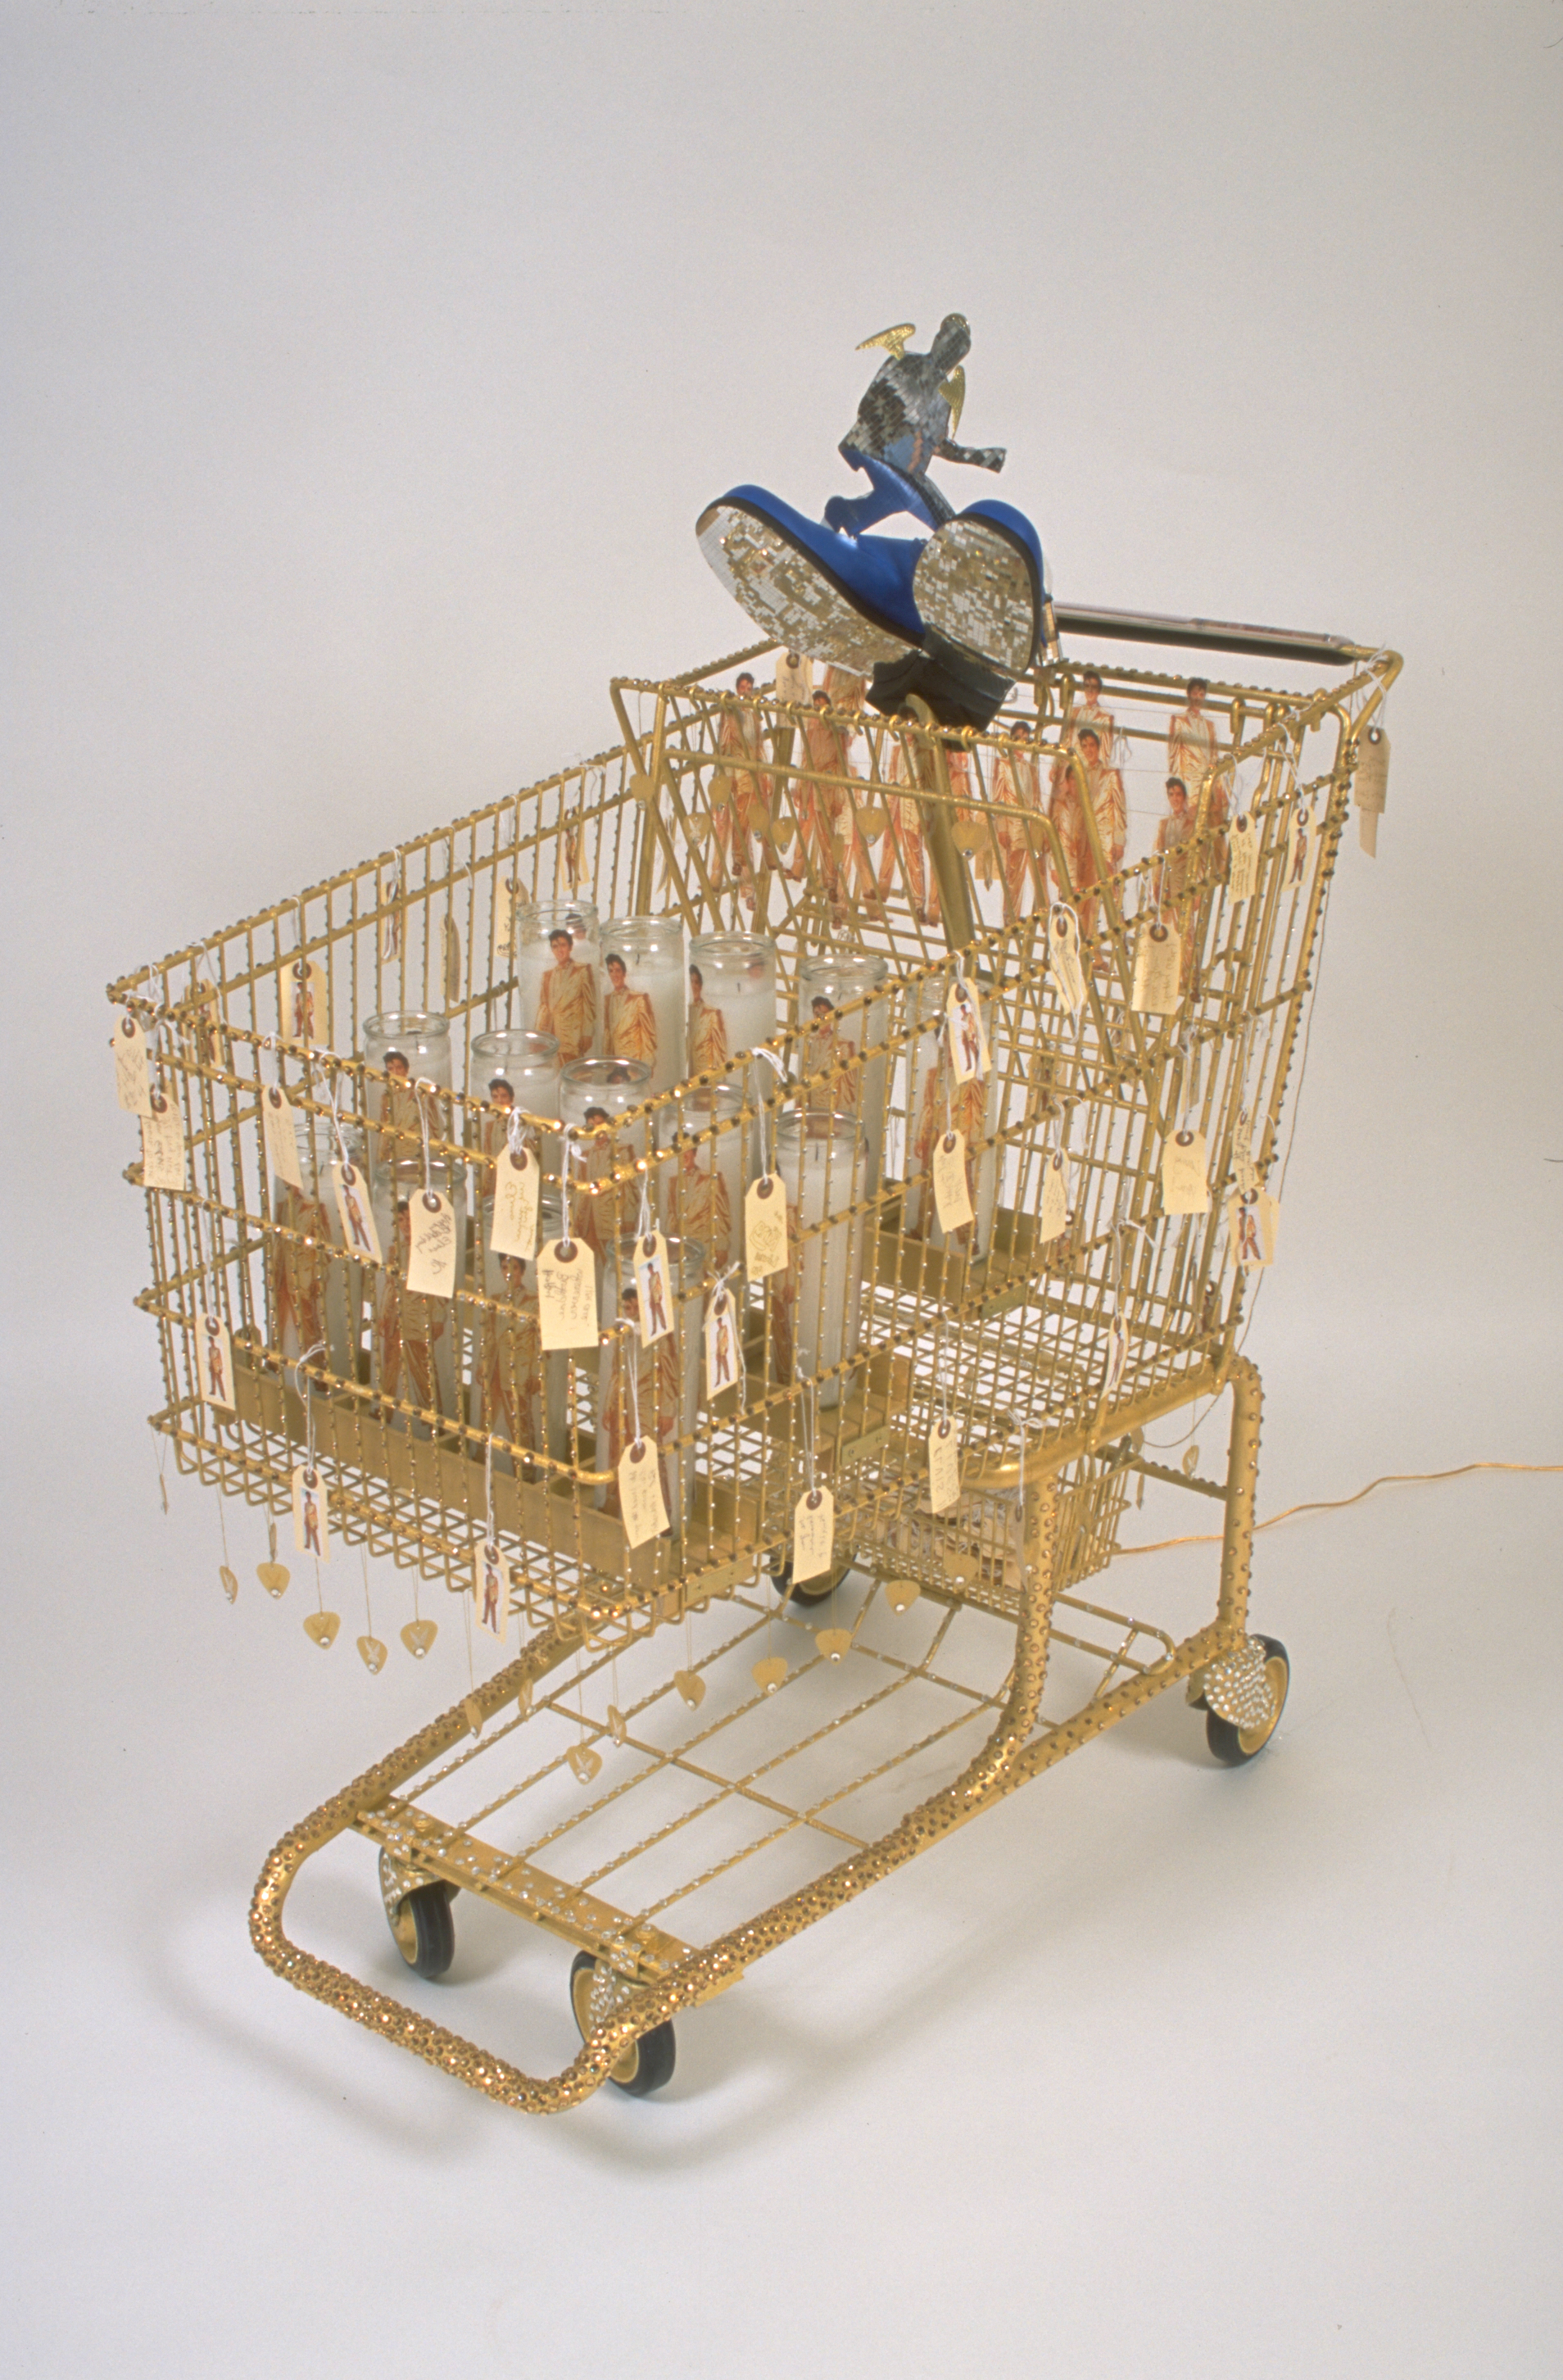 All Shrined Up Linda Dolack Large Sculpture 65th Birthday Elvis Mixed Media Grocery Cart Created for Intuit Gallery